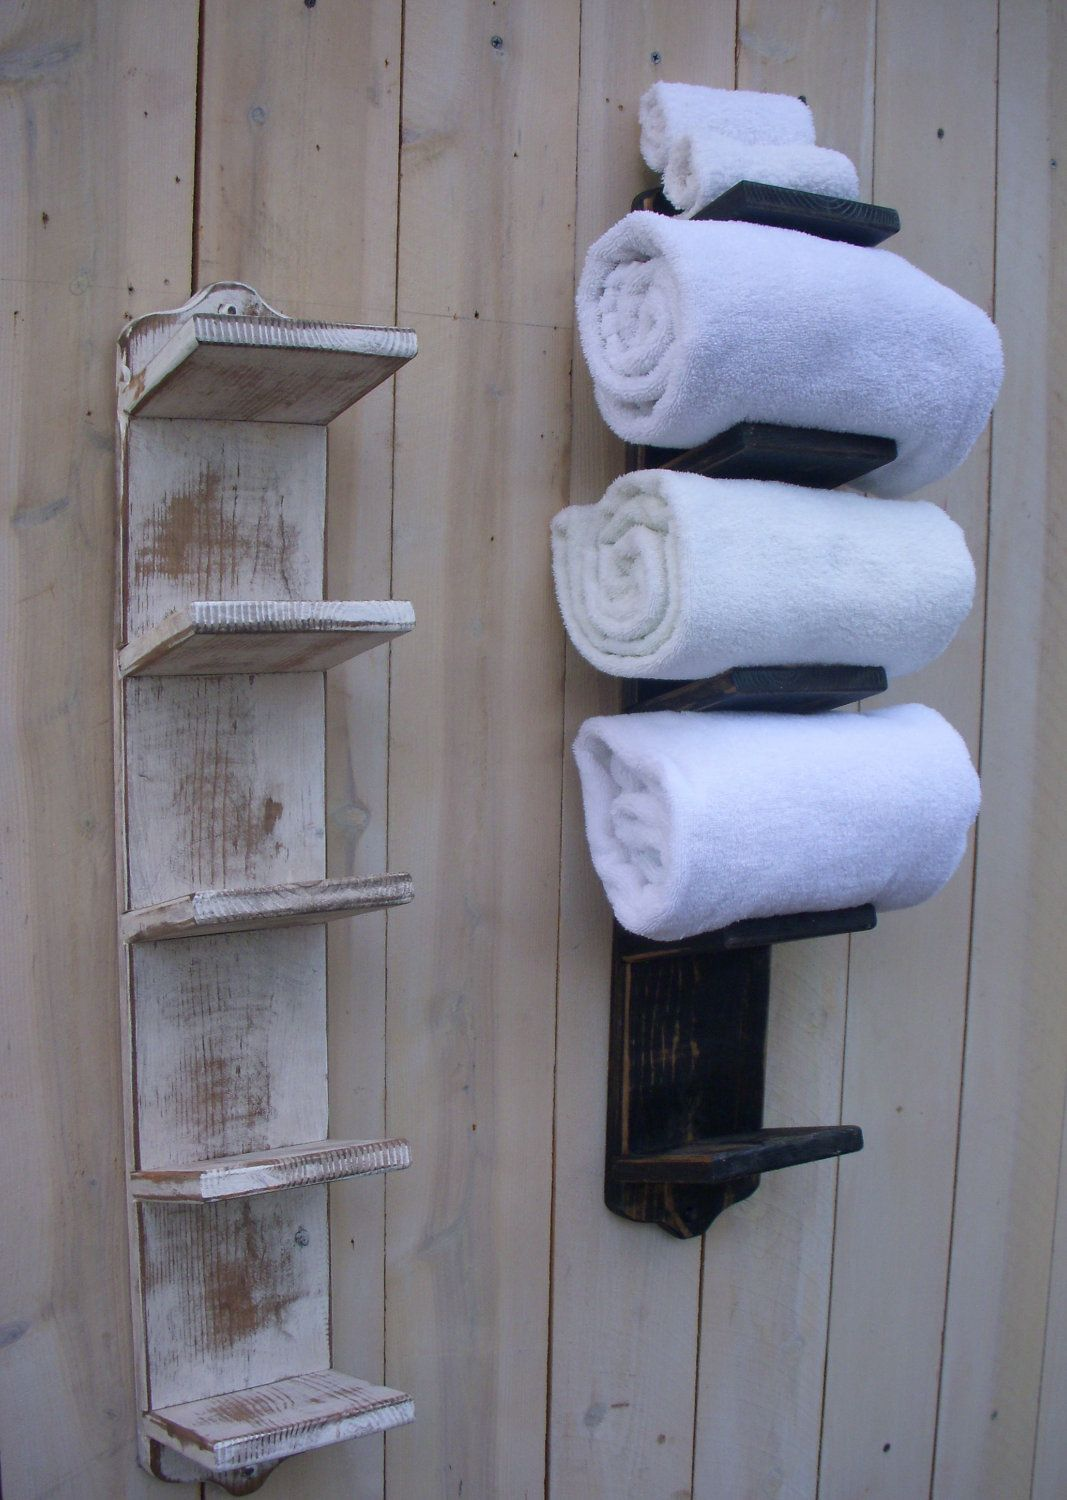 Bathroom Towel Holder Towel Holder Bathroom On Pinterest Pool Towel Holders